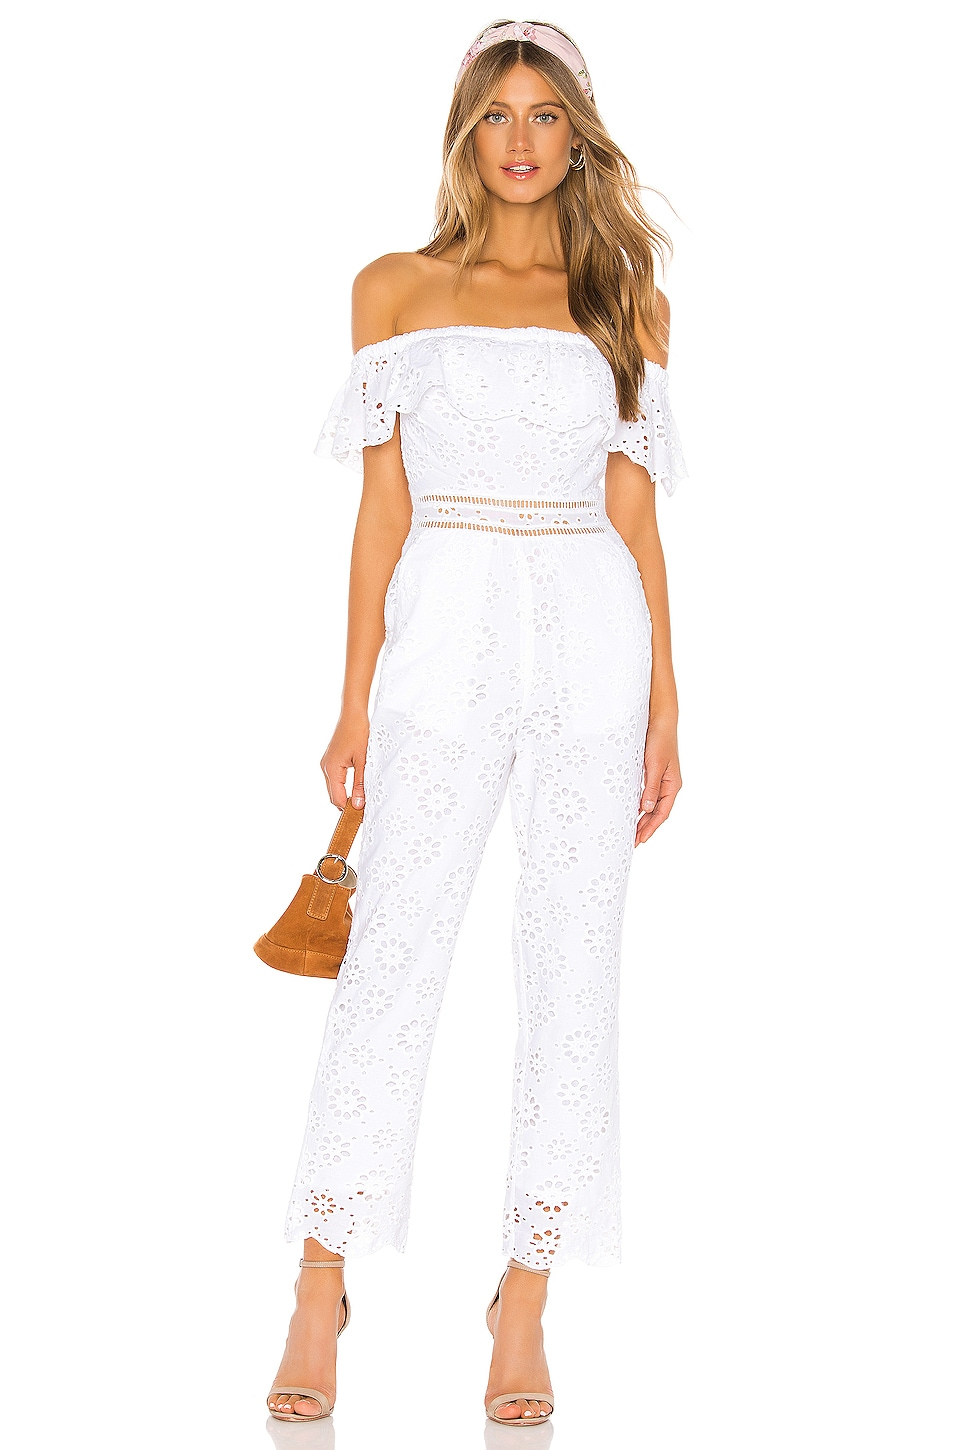 Lovers + Friends Naya Jumpsuit in White